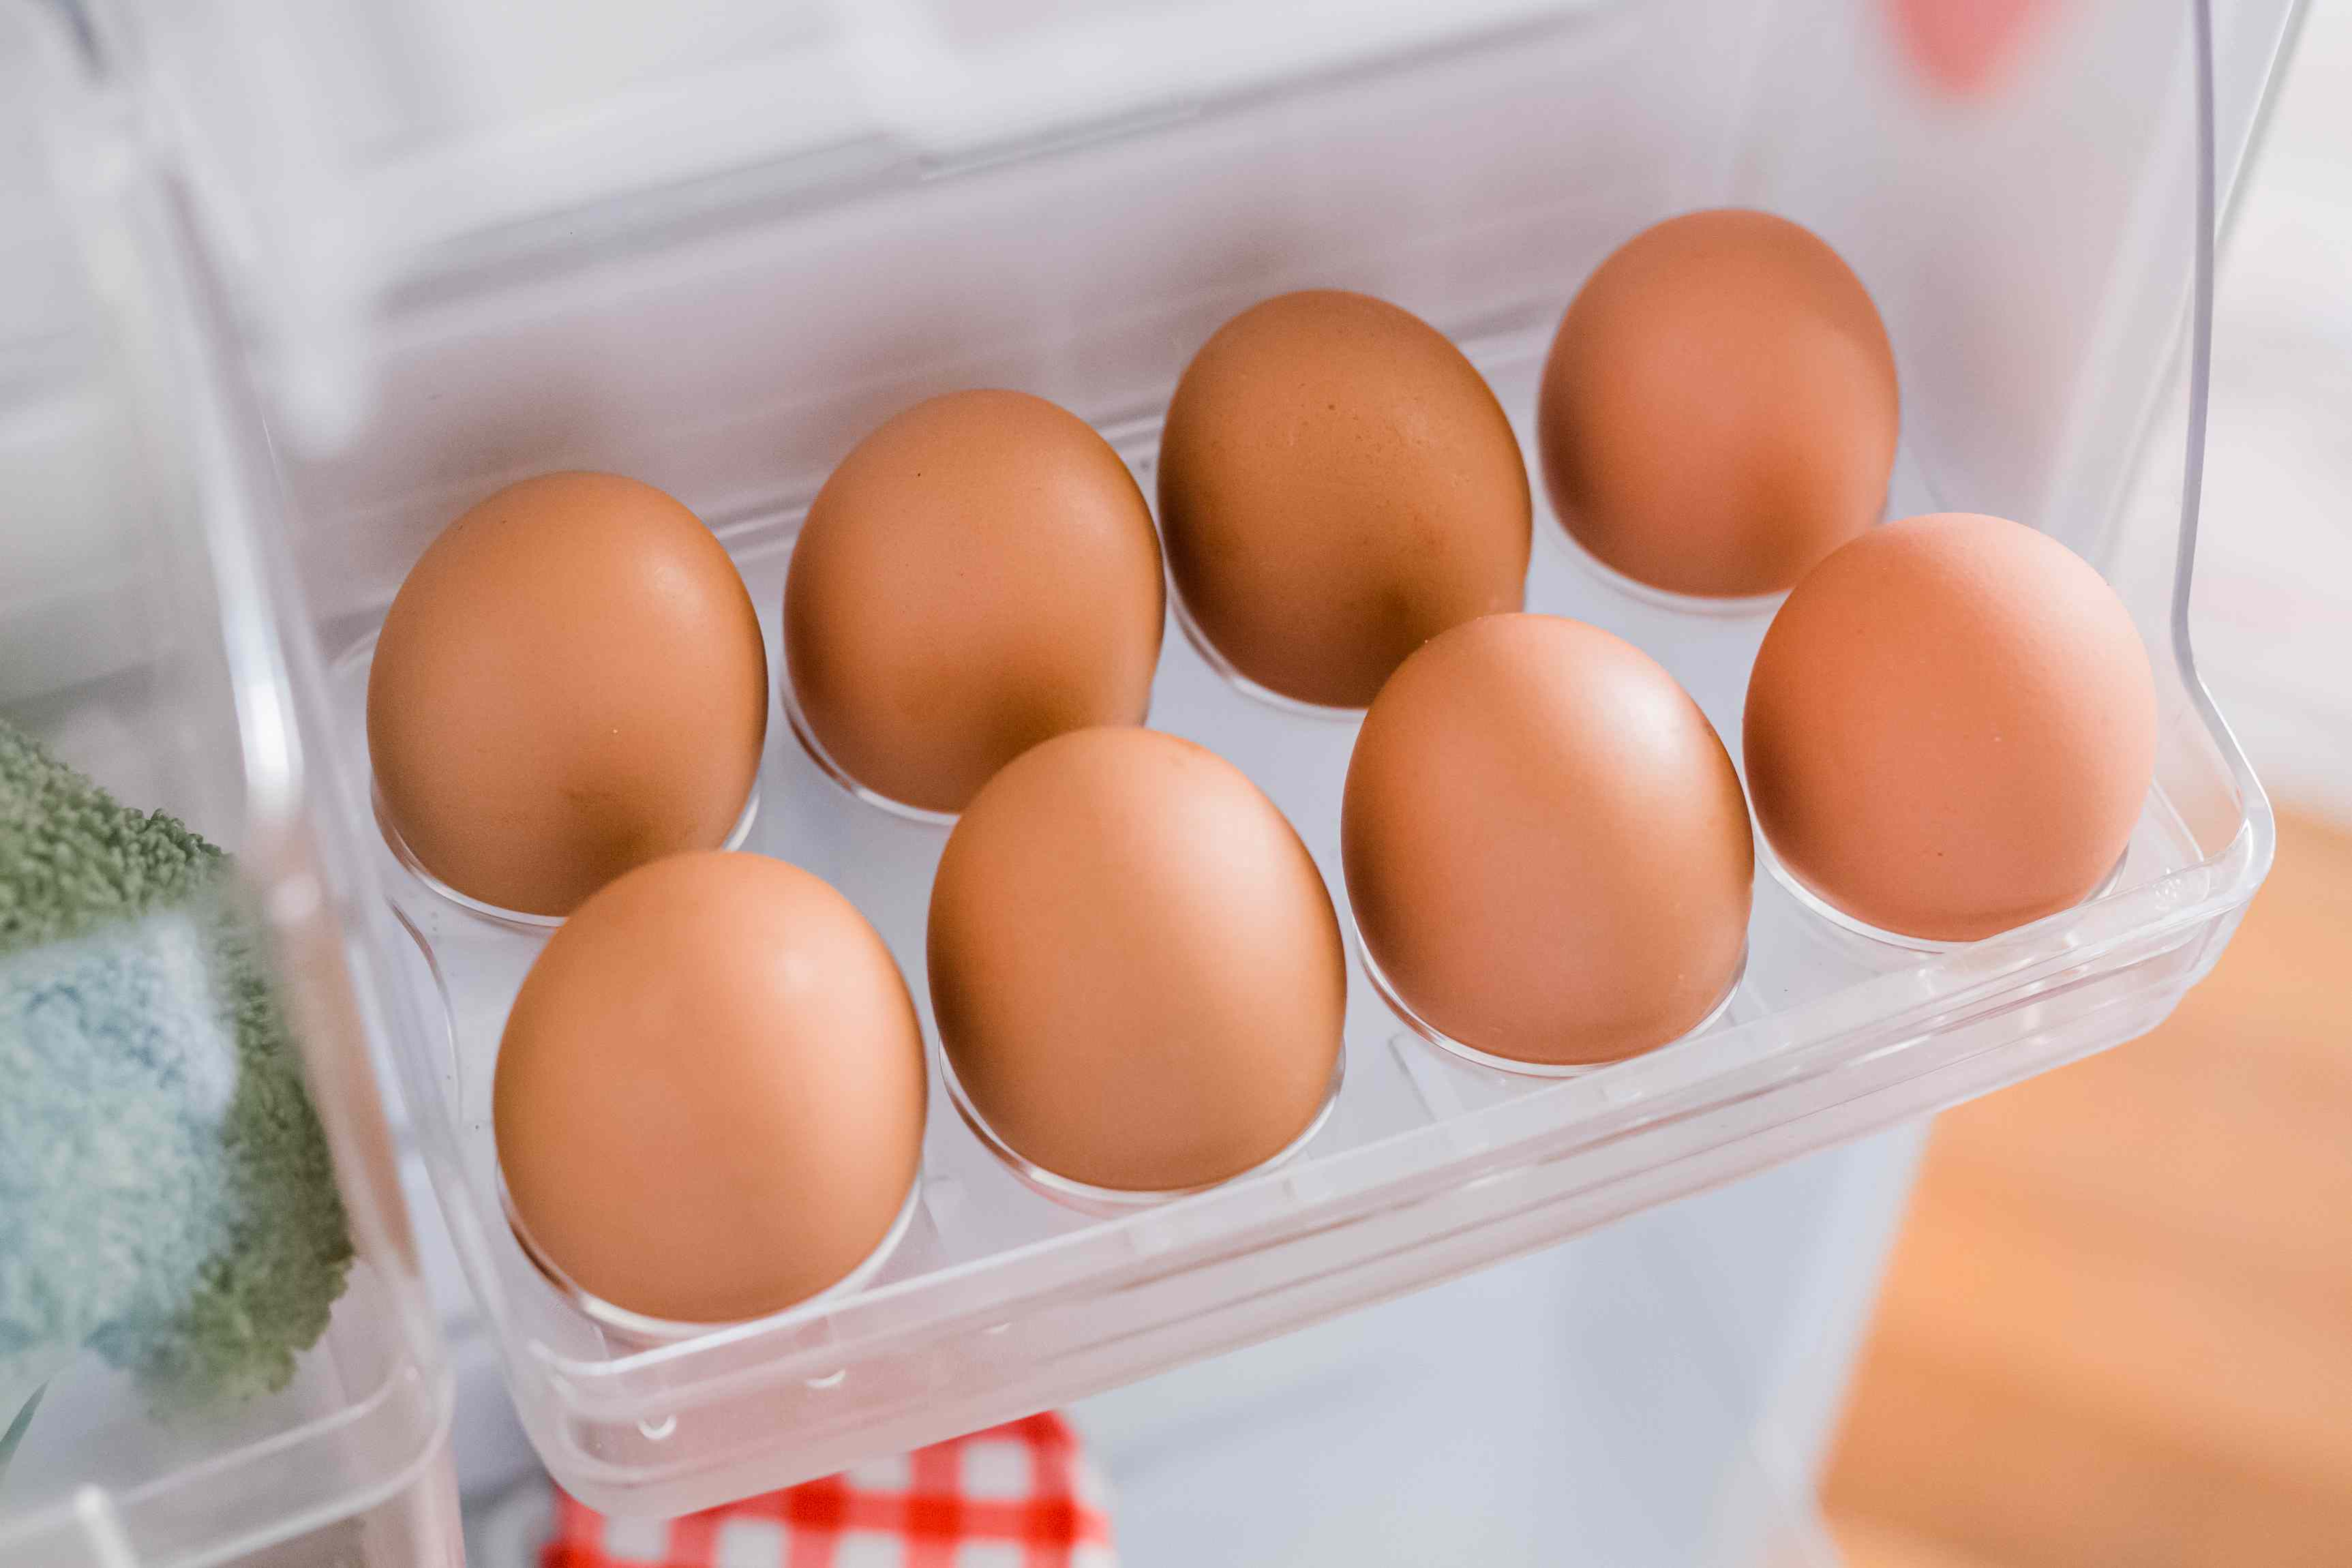 storing eggs in the refrigerator